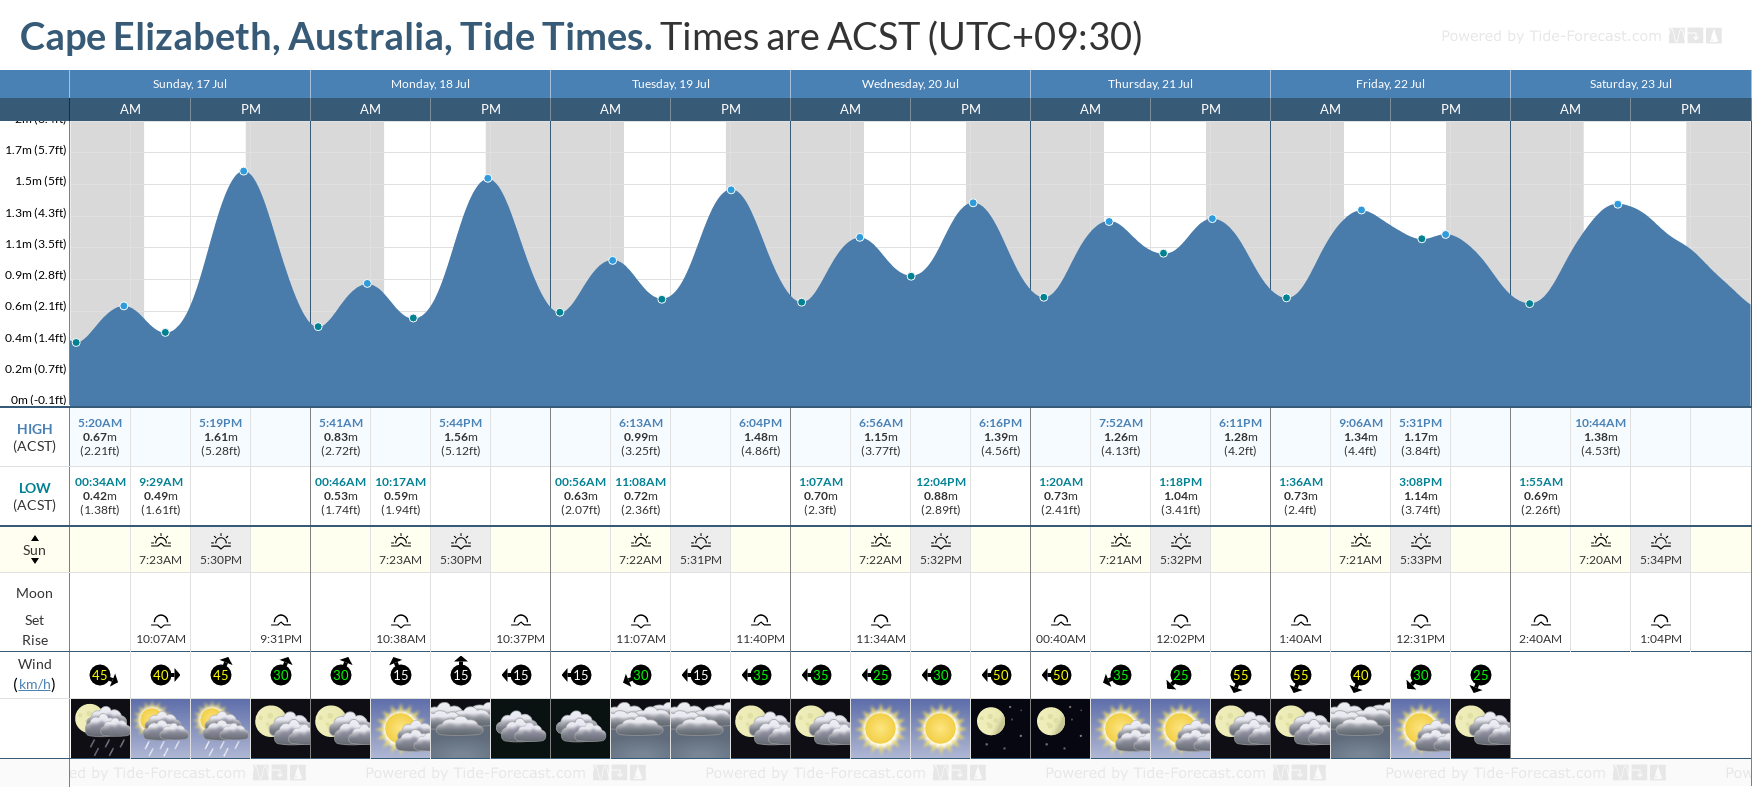 Cape Elizabeth, Australia Tide Chart including high and low tide tide times for the next 7 days